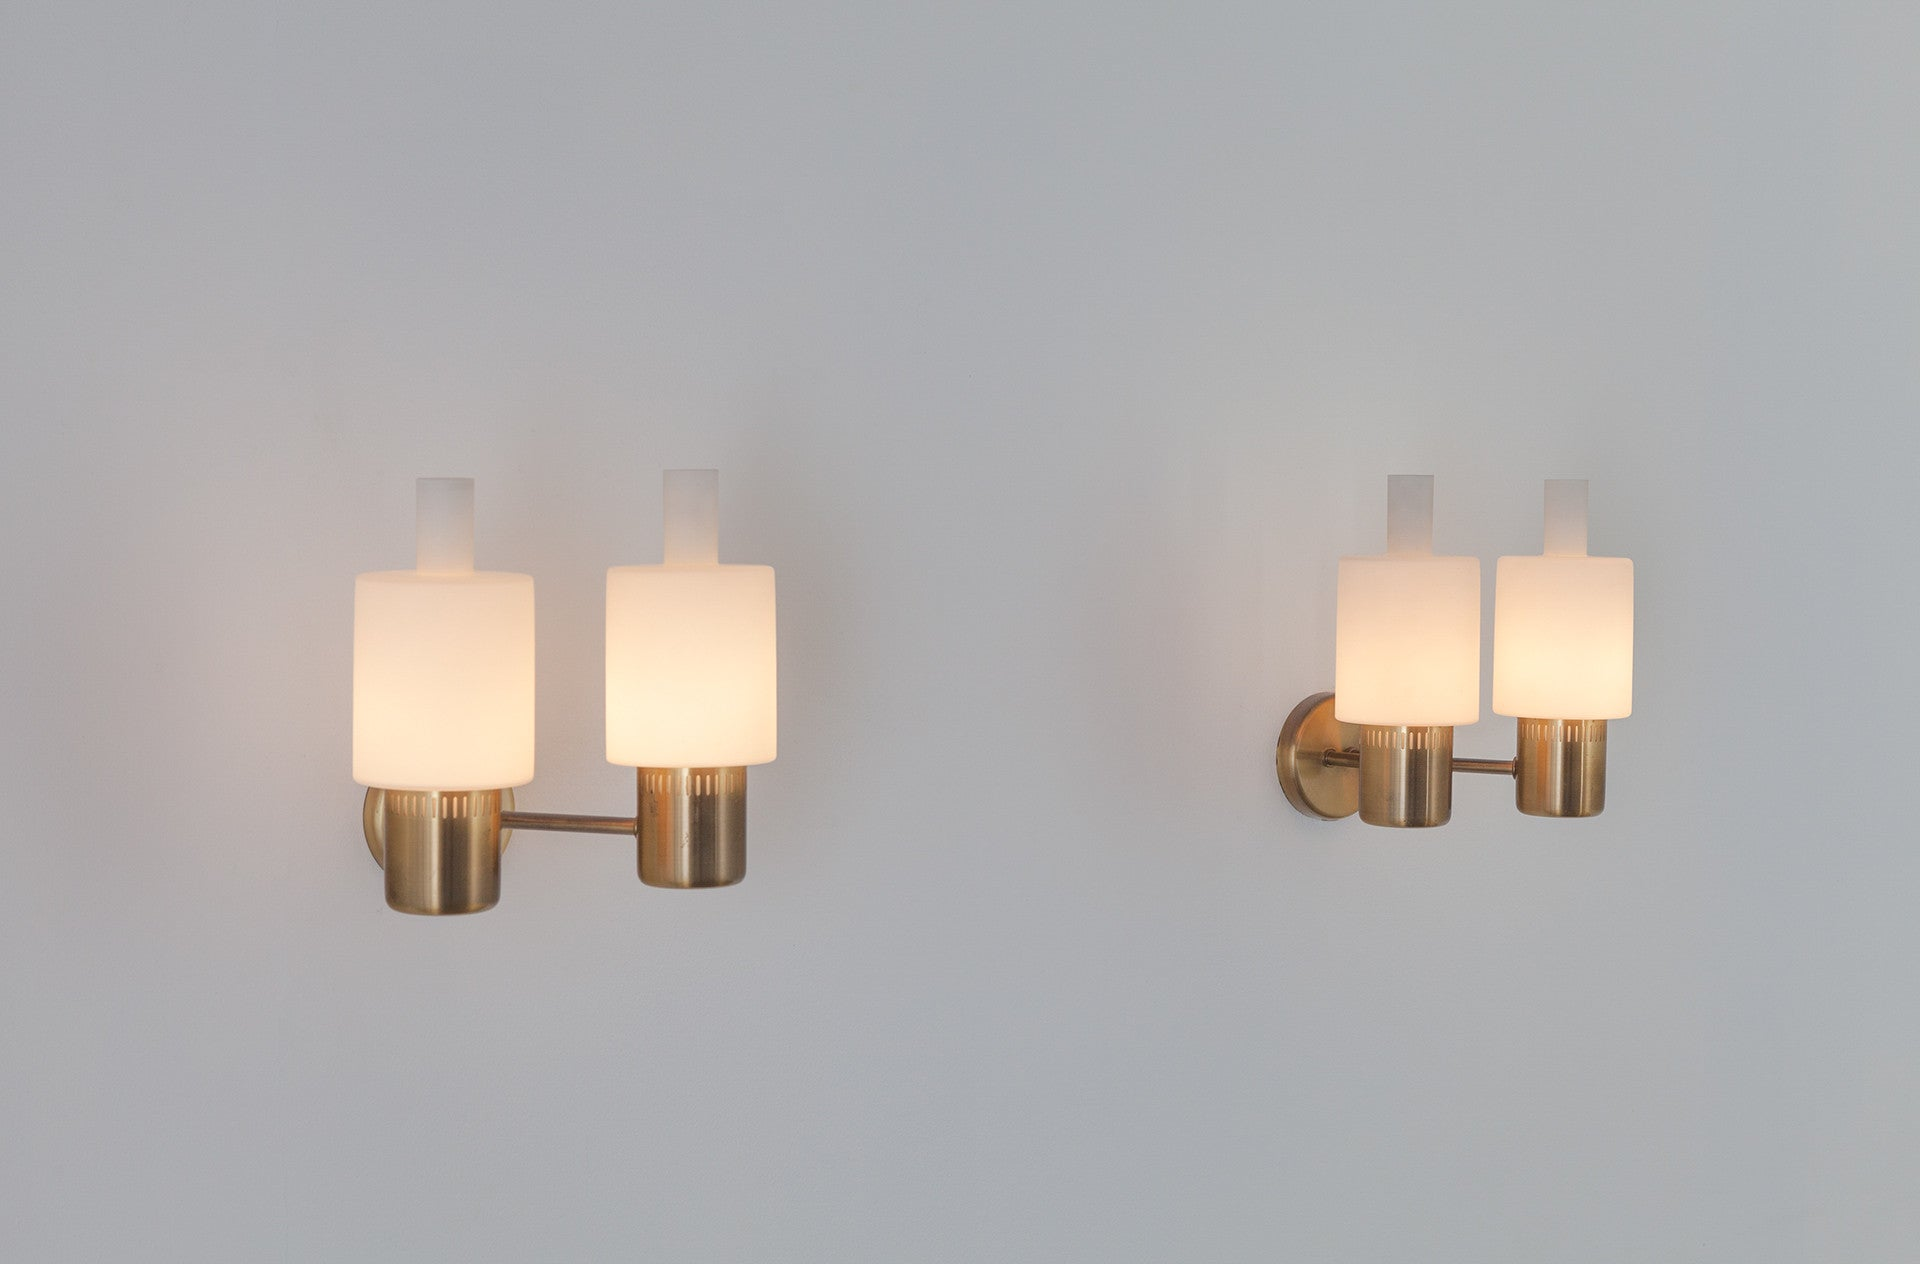 Nordlys wall light by Jo Hammerborg